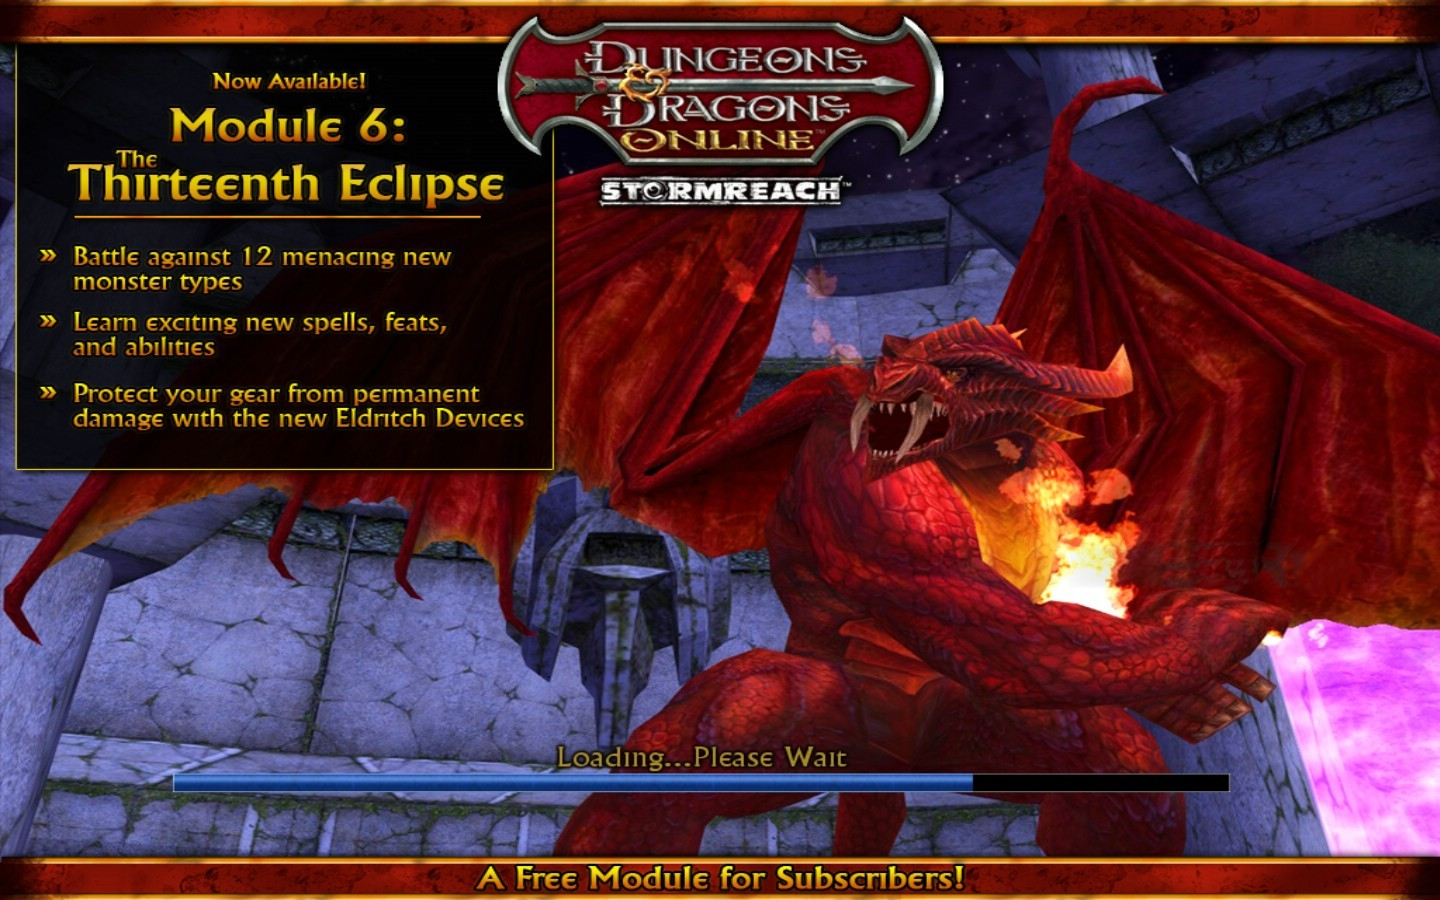 Dungeons &amp; Dragons Online - Mod 6 Splash Screen